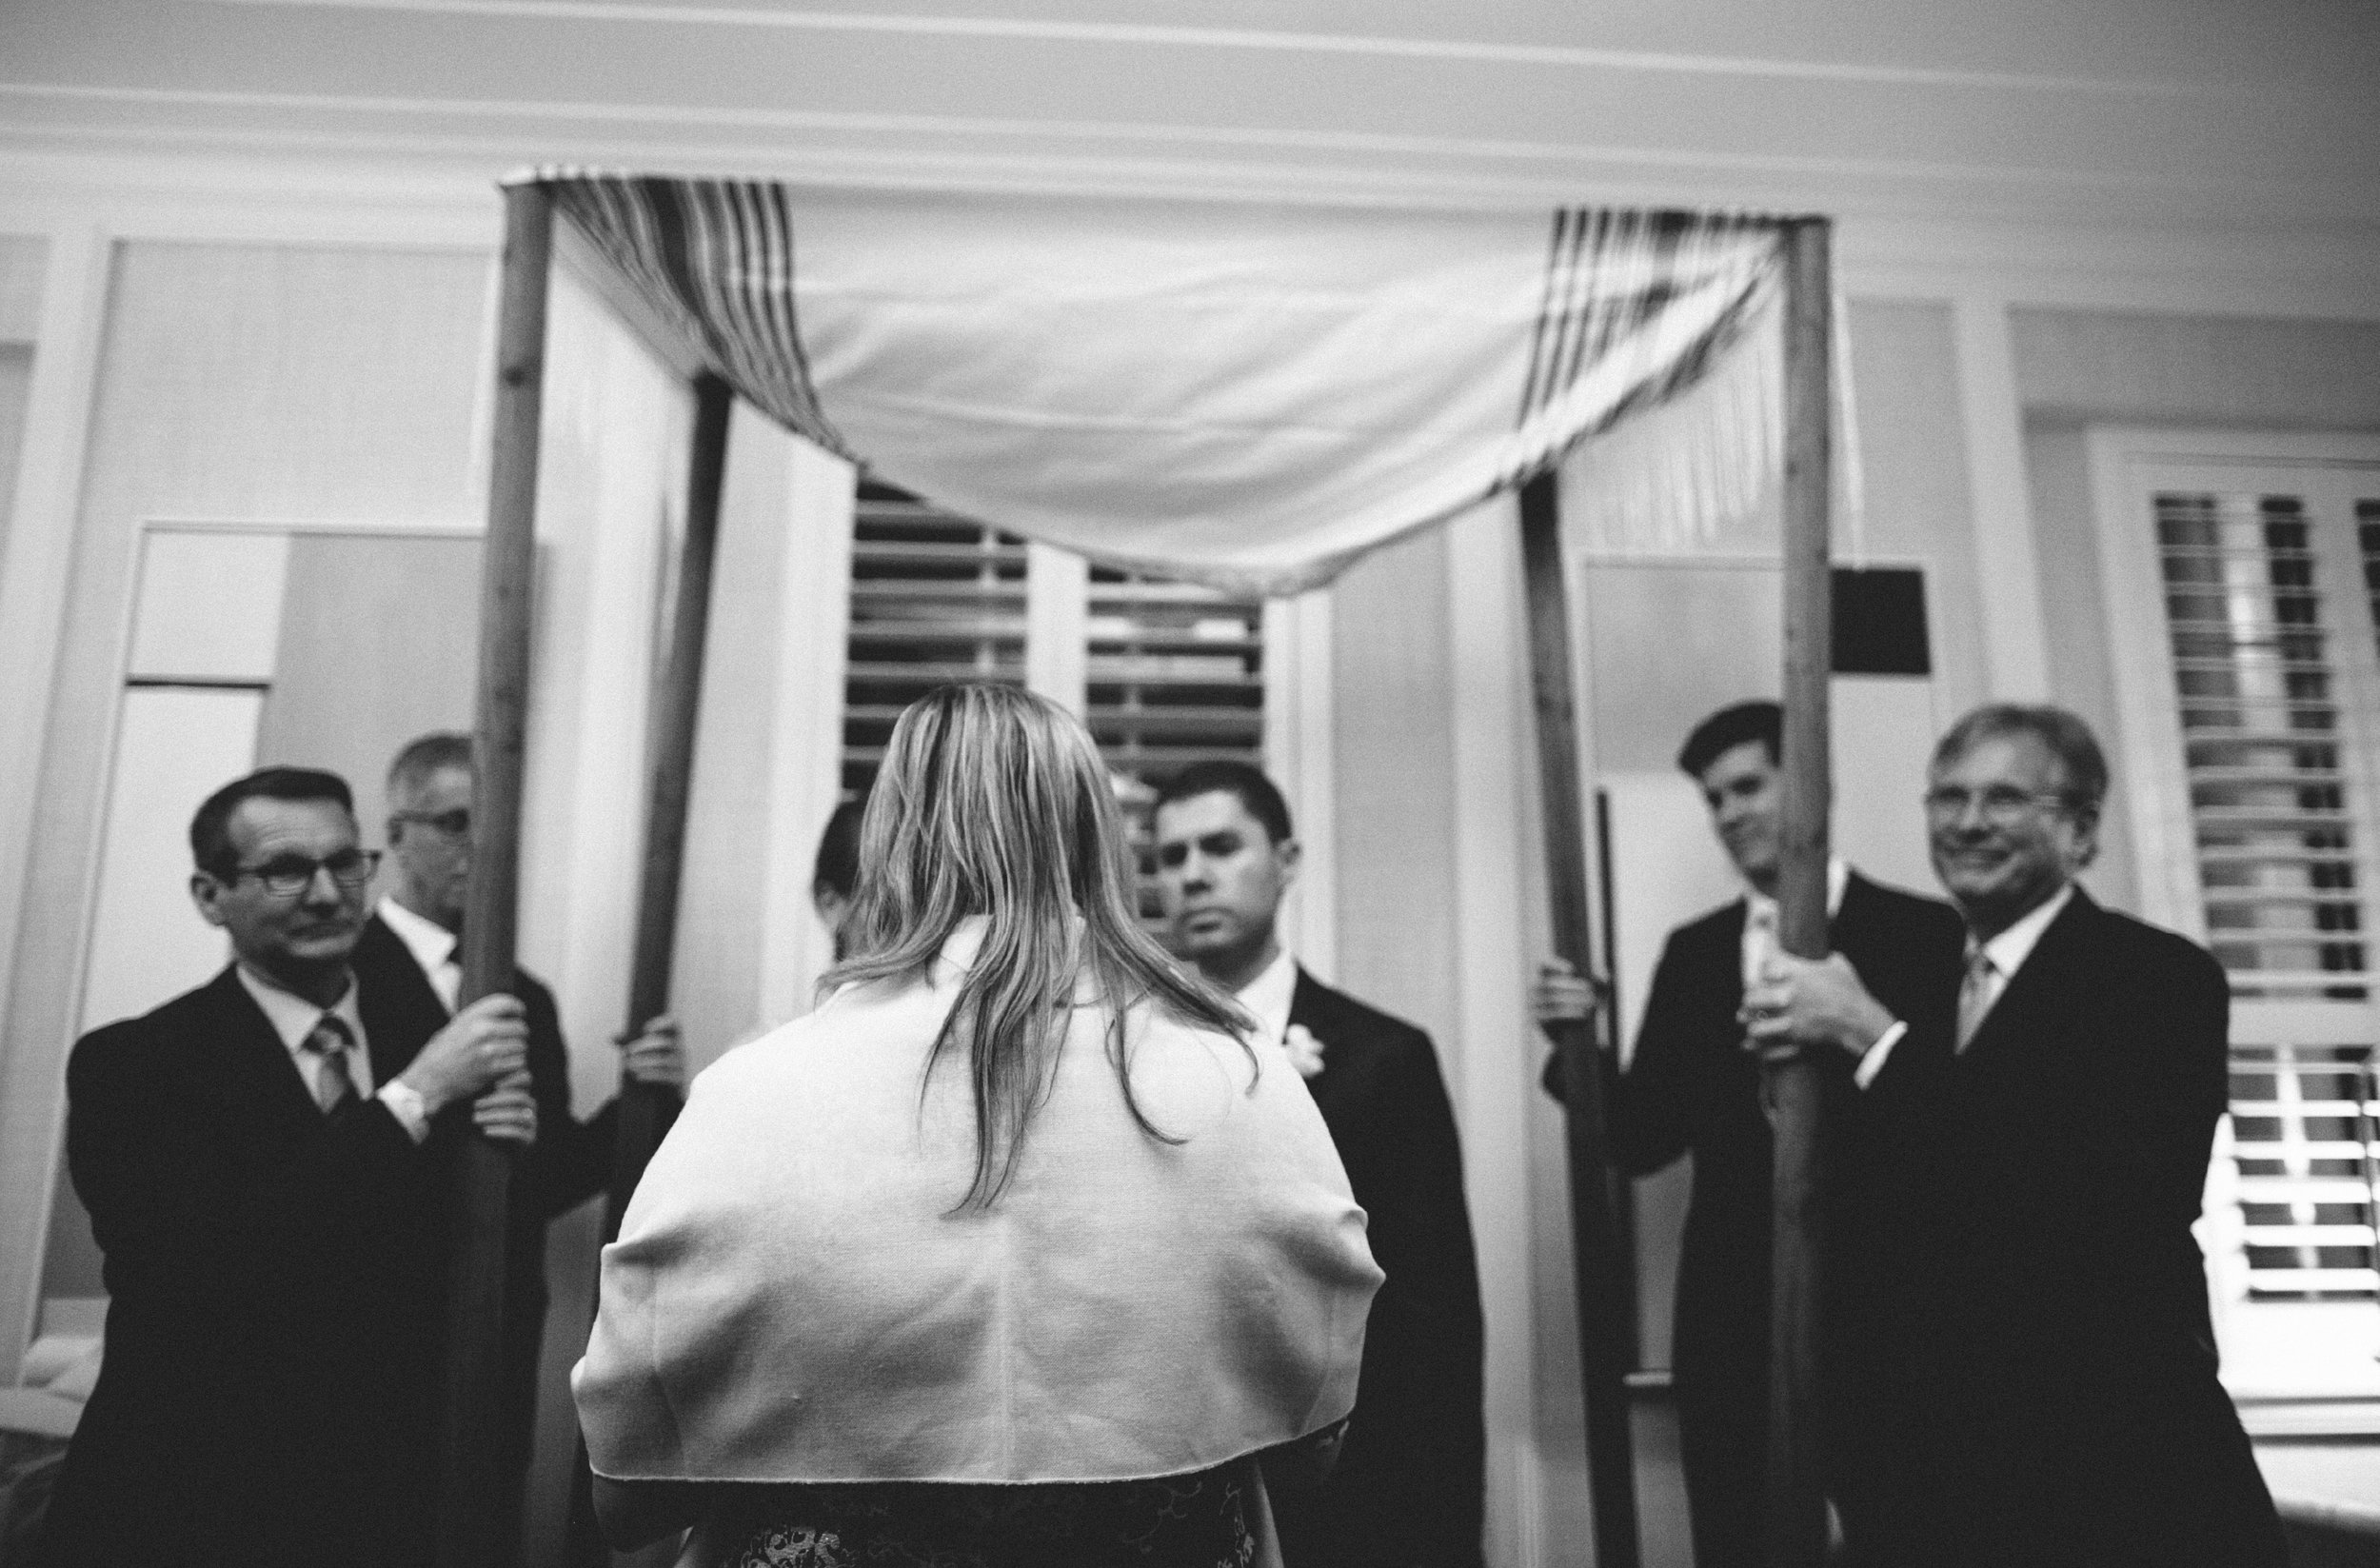 Laura + Vitaly's Intimate Ft Lauderdale Wedding at The Pillars Hotel20.jpg